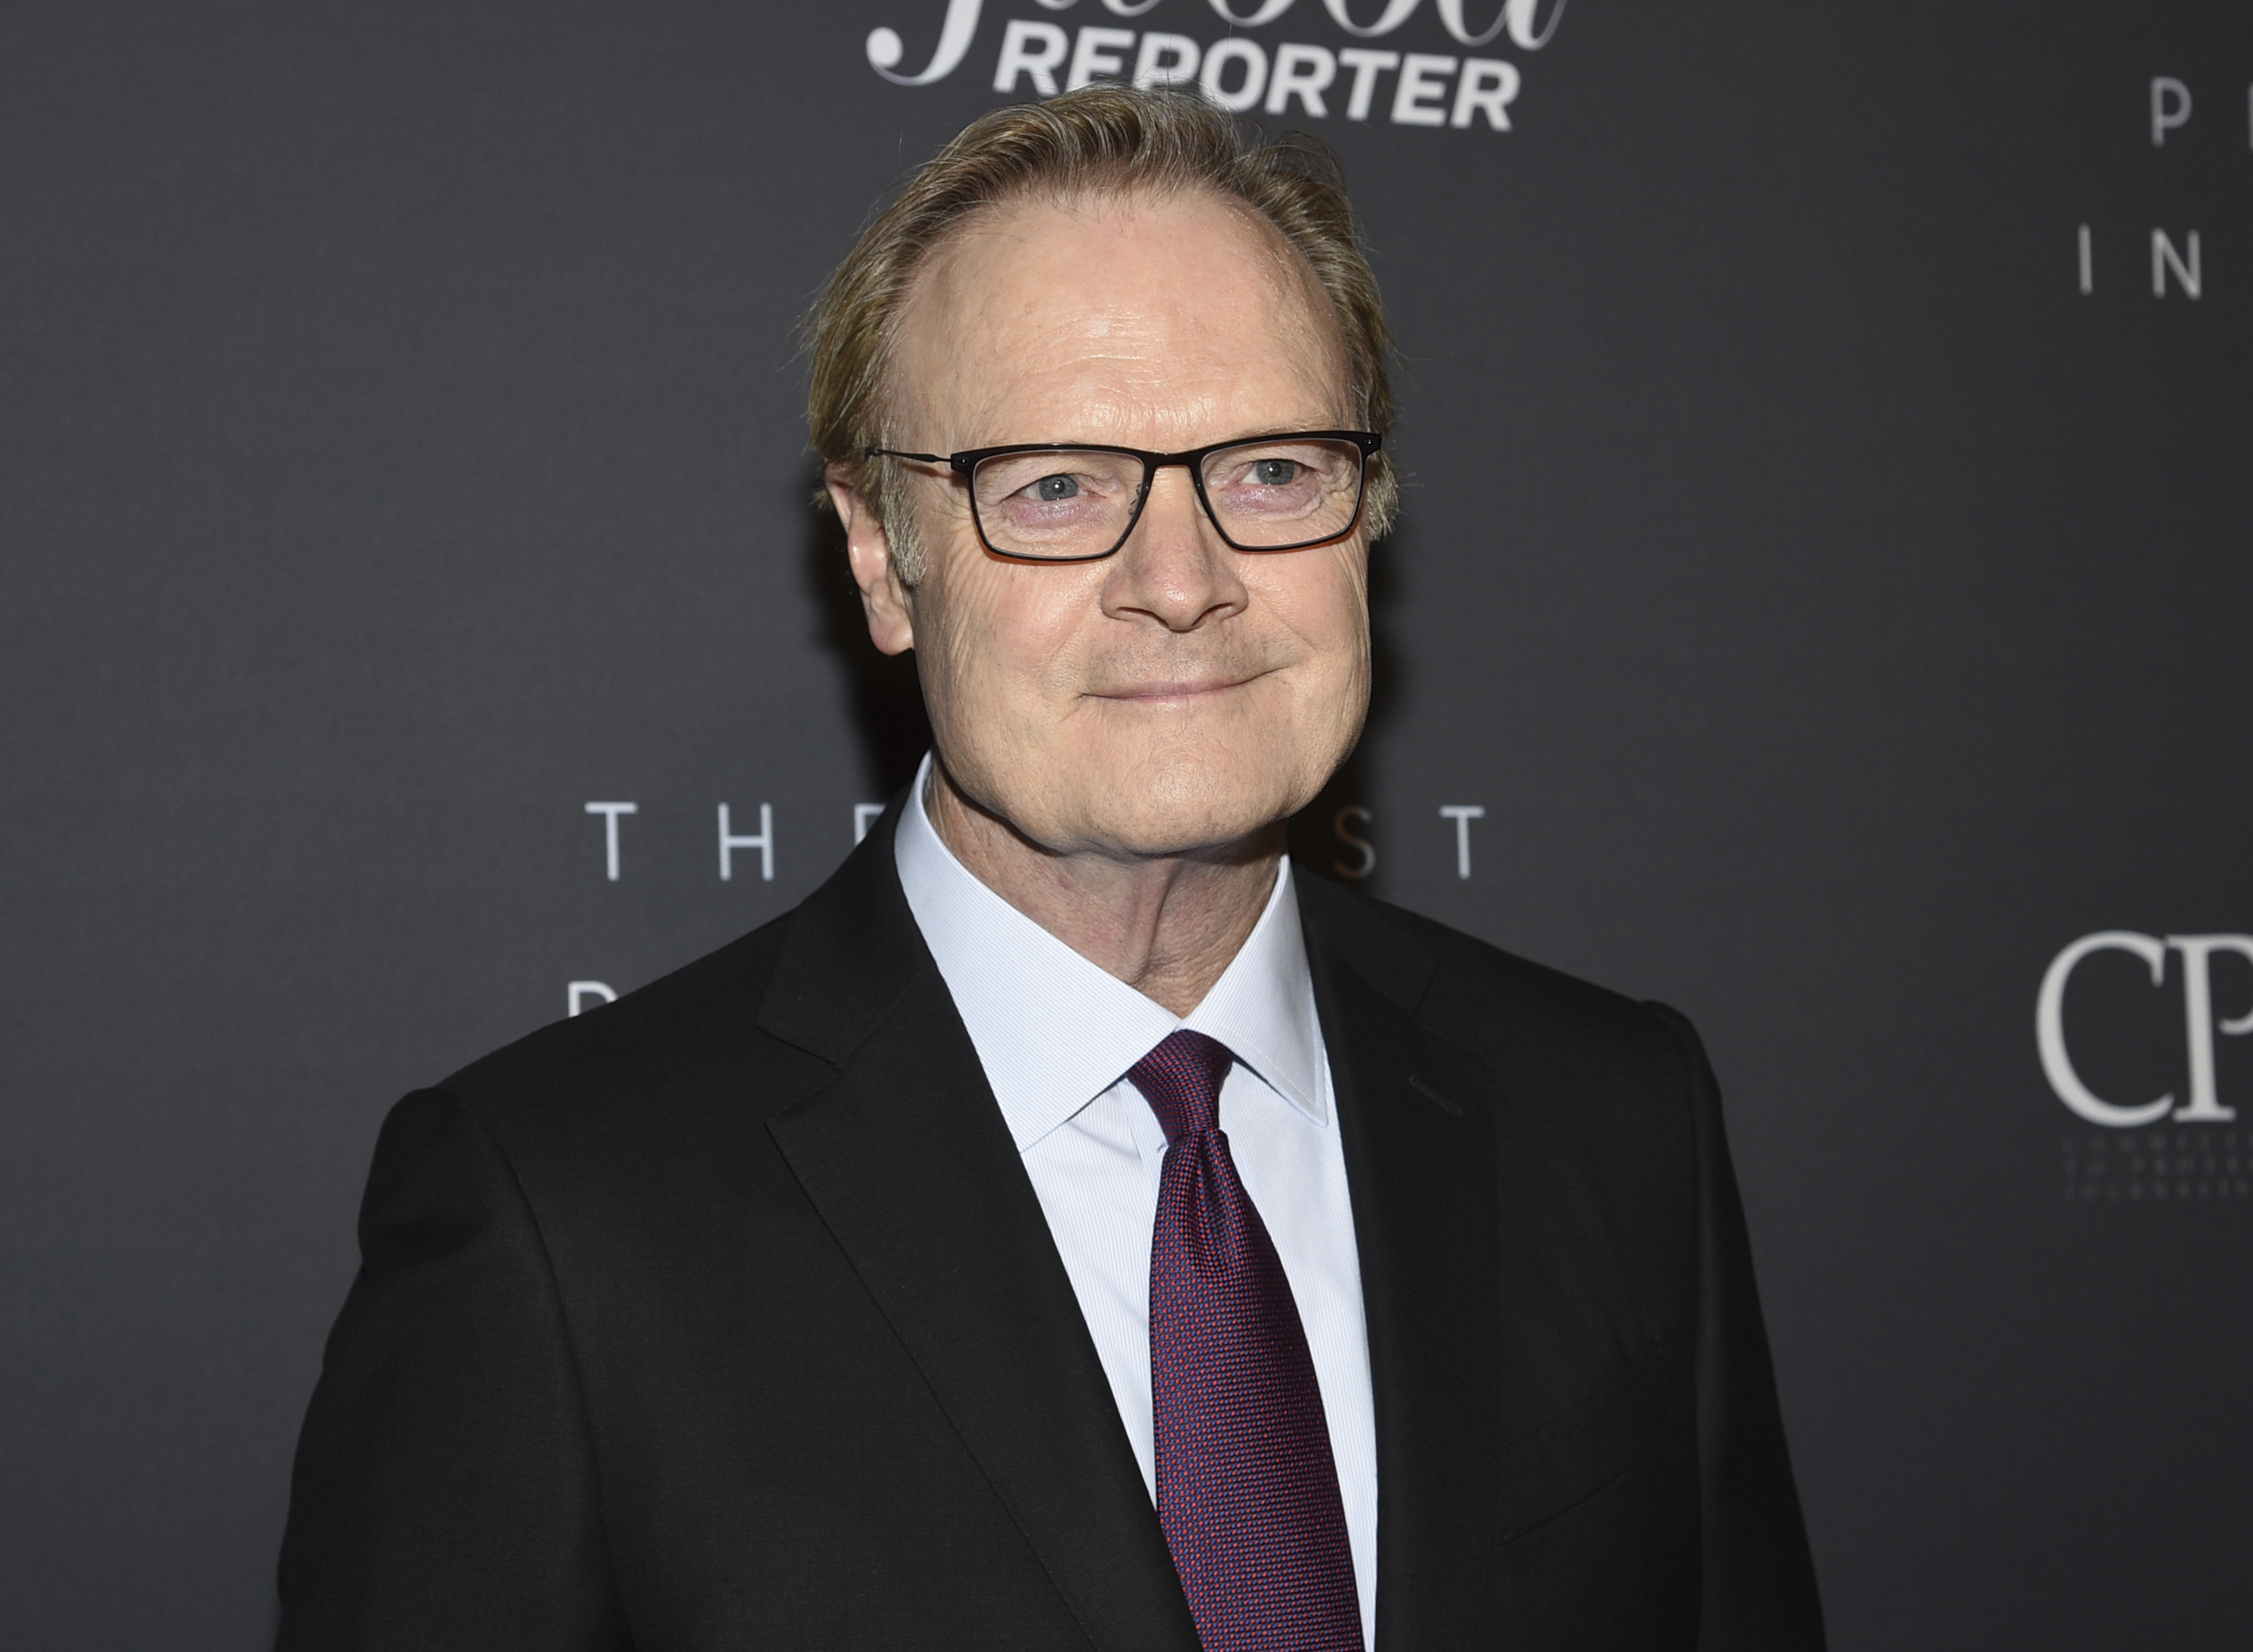 MSNBCs ODonnell retracts Trump story